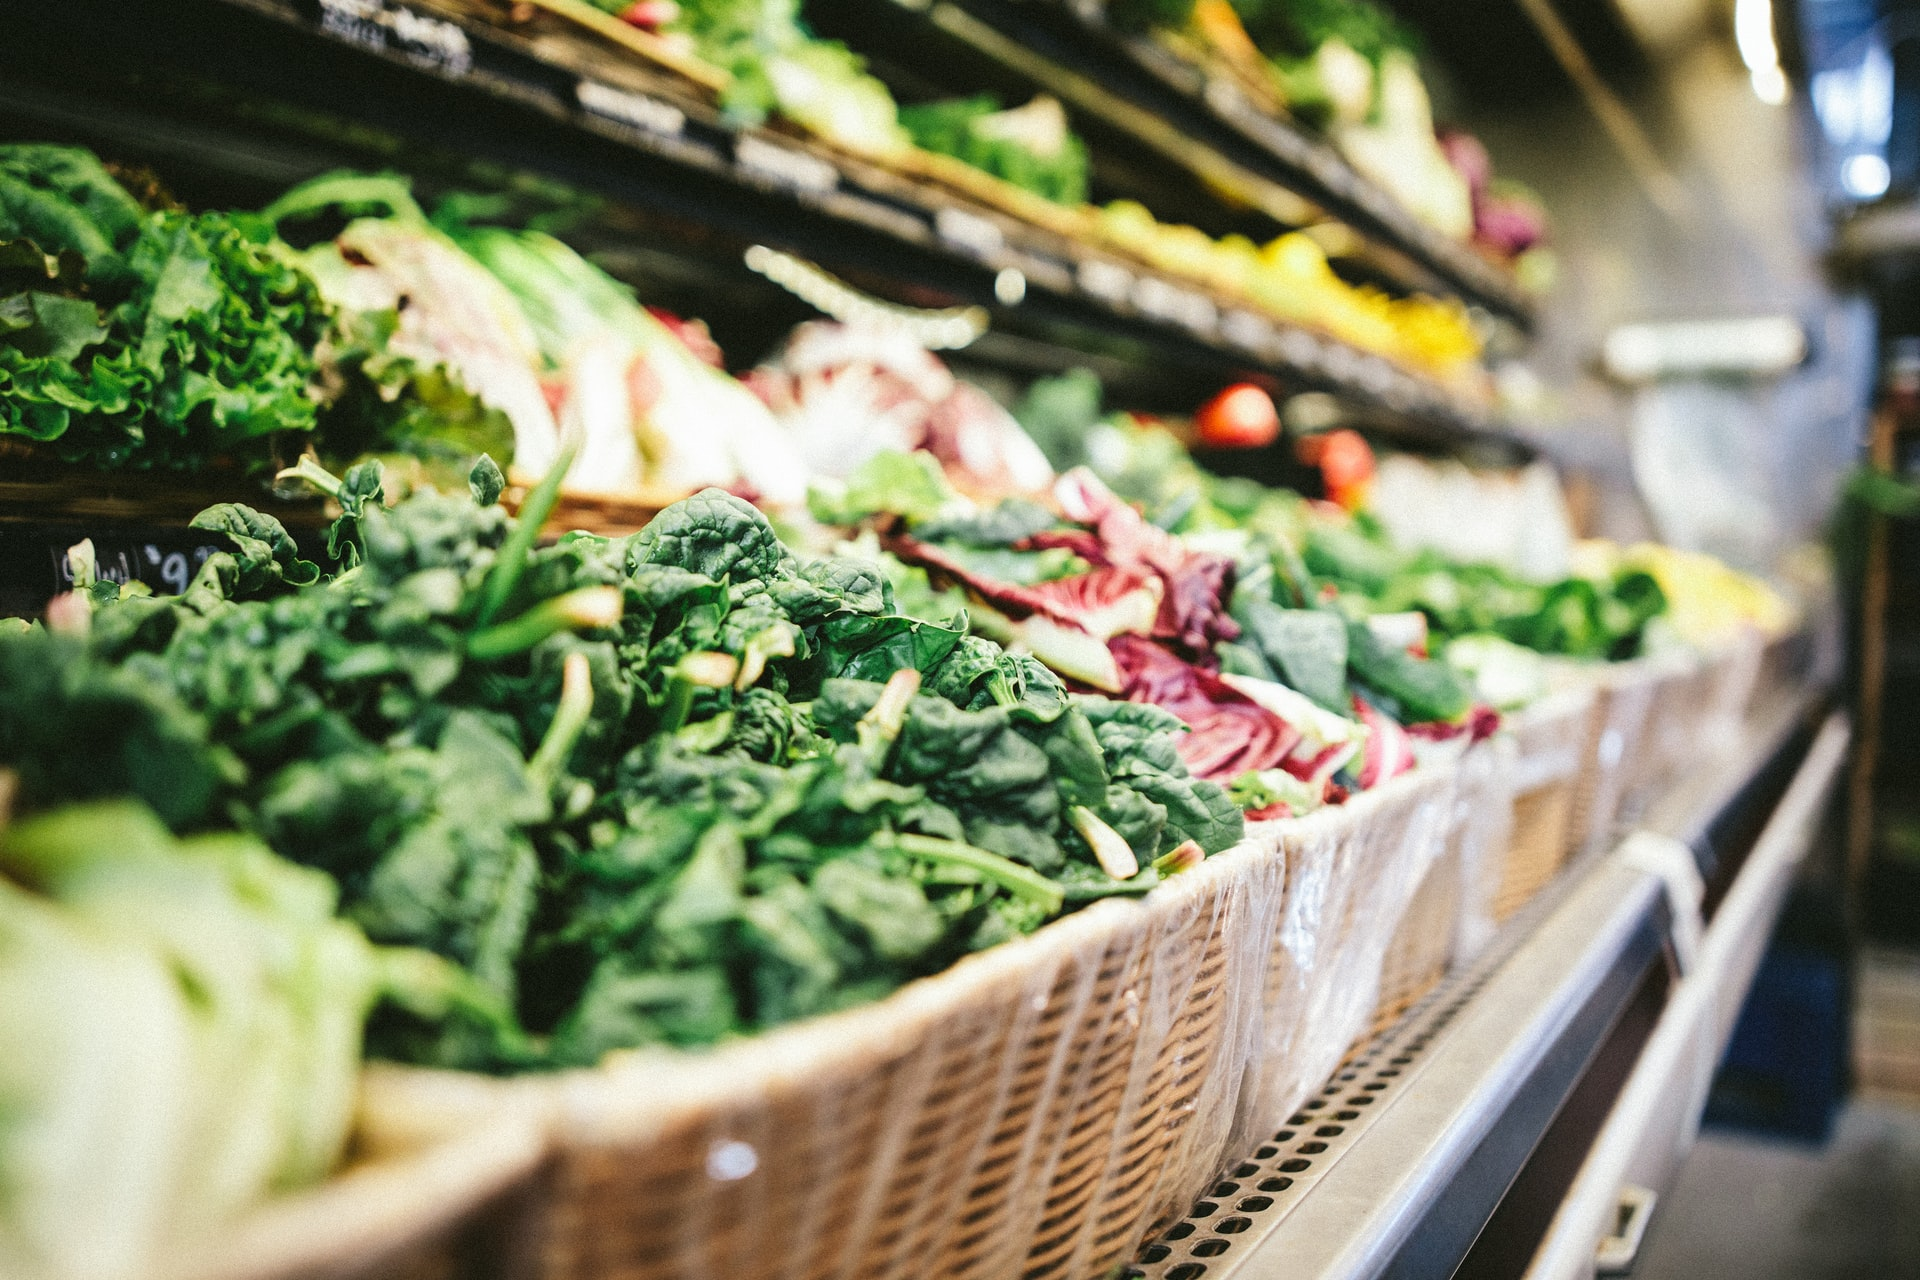 Odd Provisions: Grocery Staples and Grab-and-Go Fare Near Your Apartment in DC